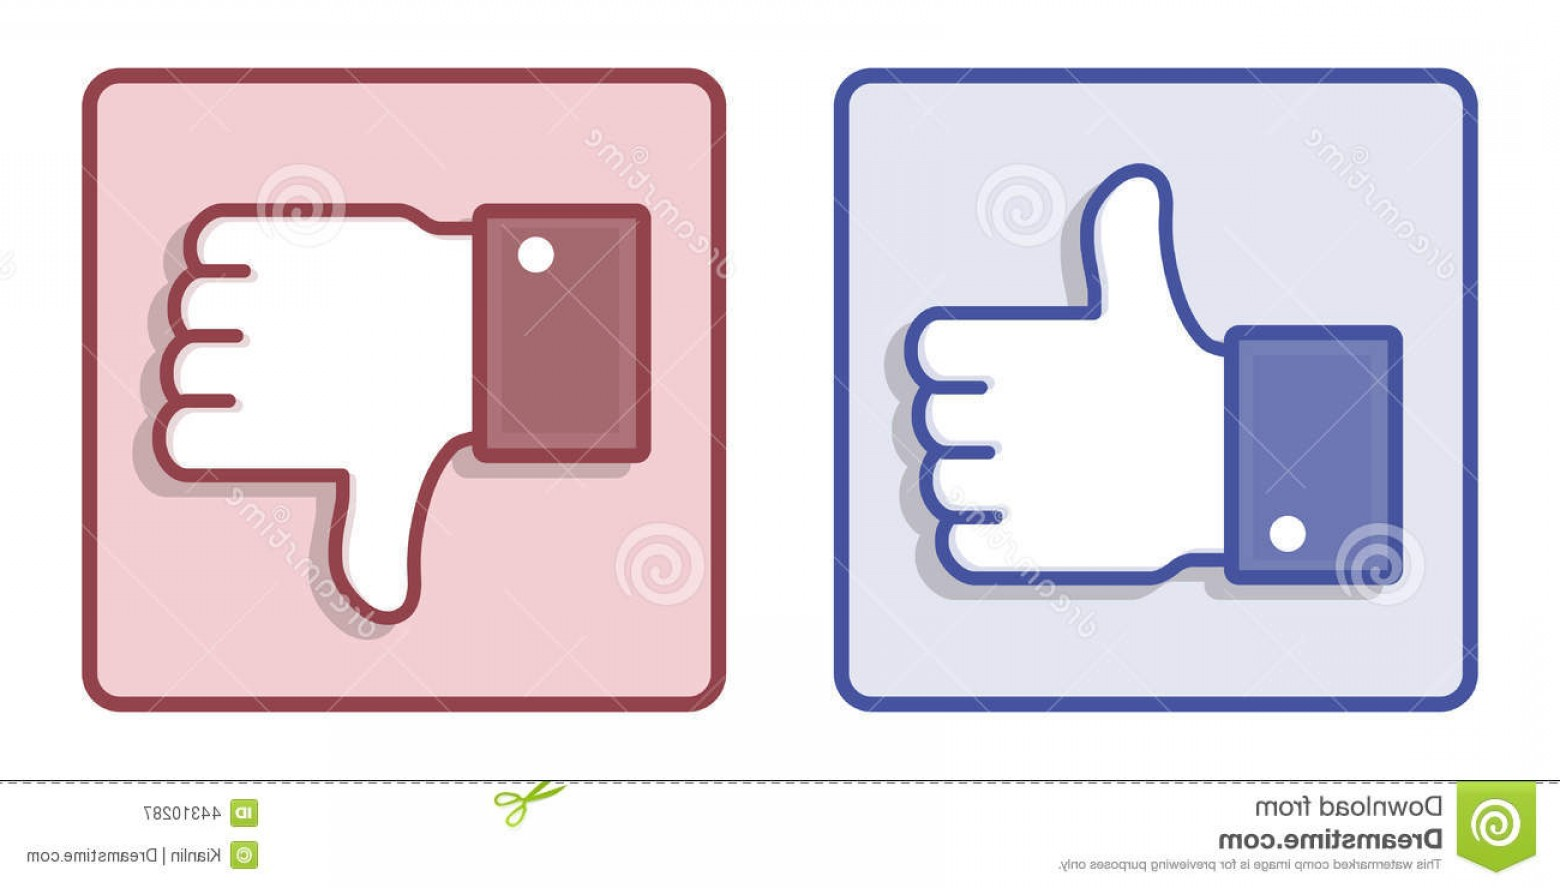 Finger Facebook Vector: Editorial Photography Vector Facebook Like Dislike Thumb Up Sign Illustration Down Hands Isolated White Image